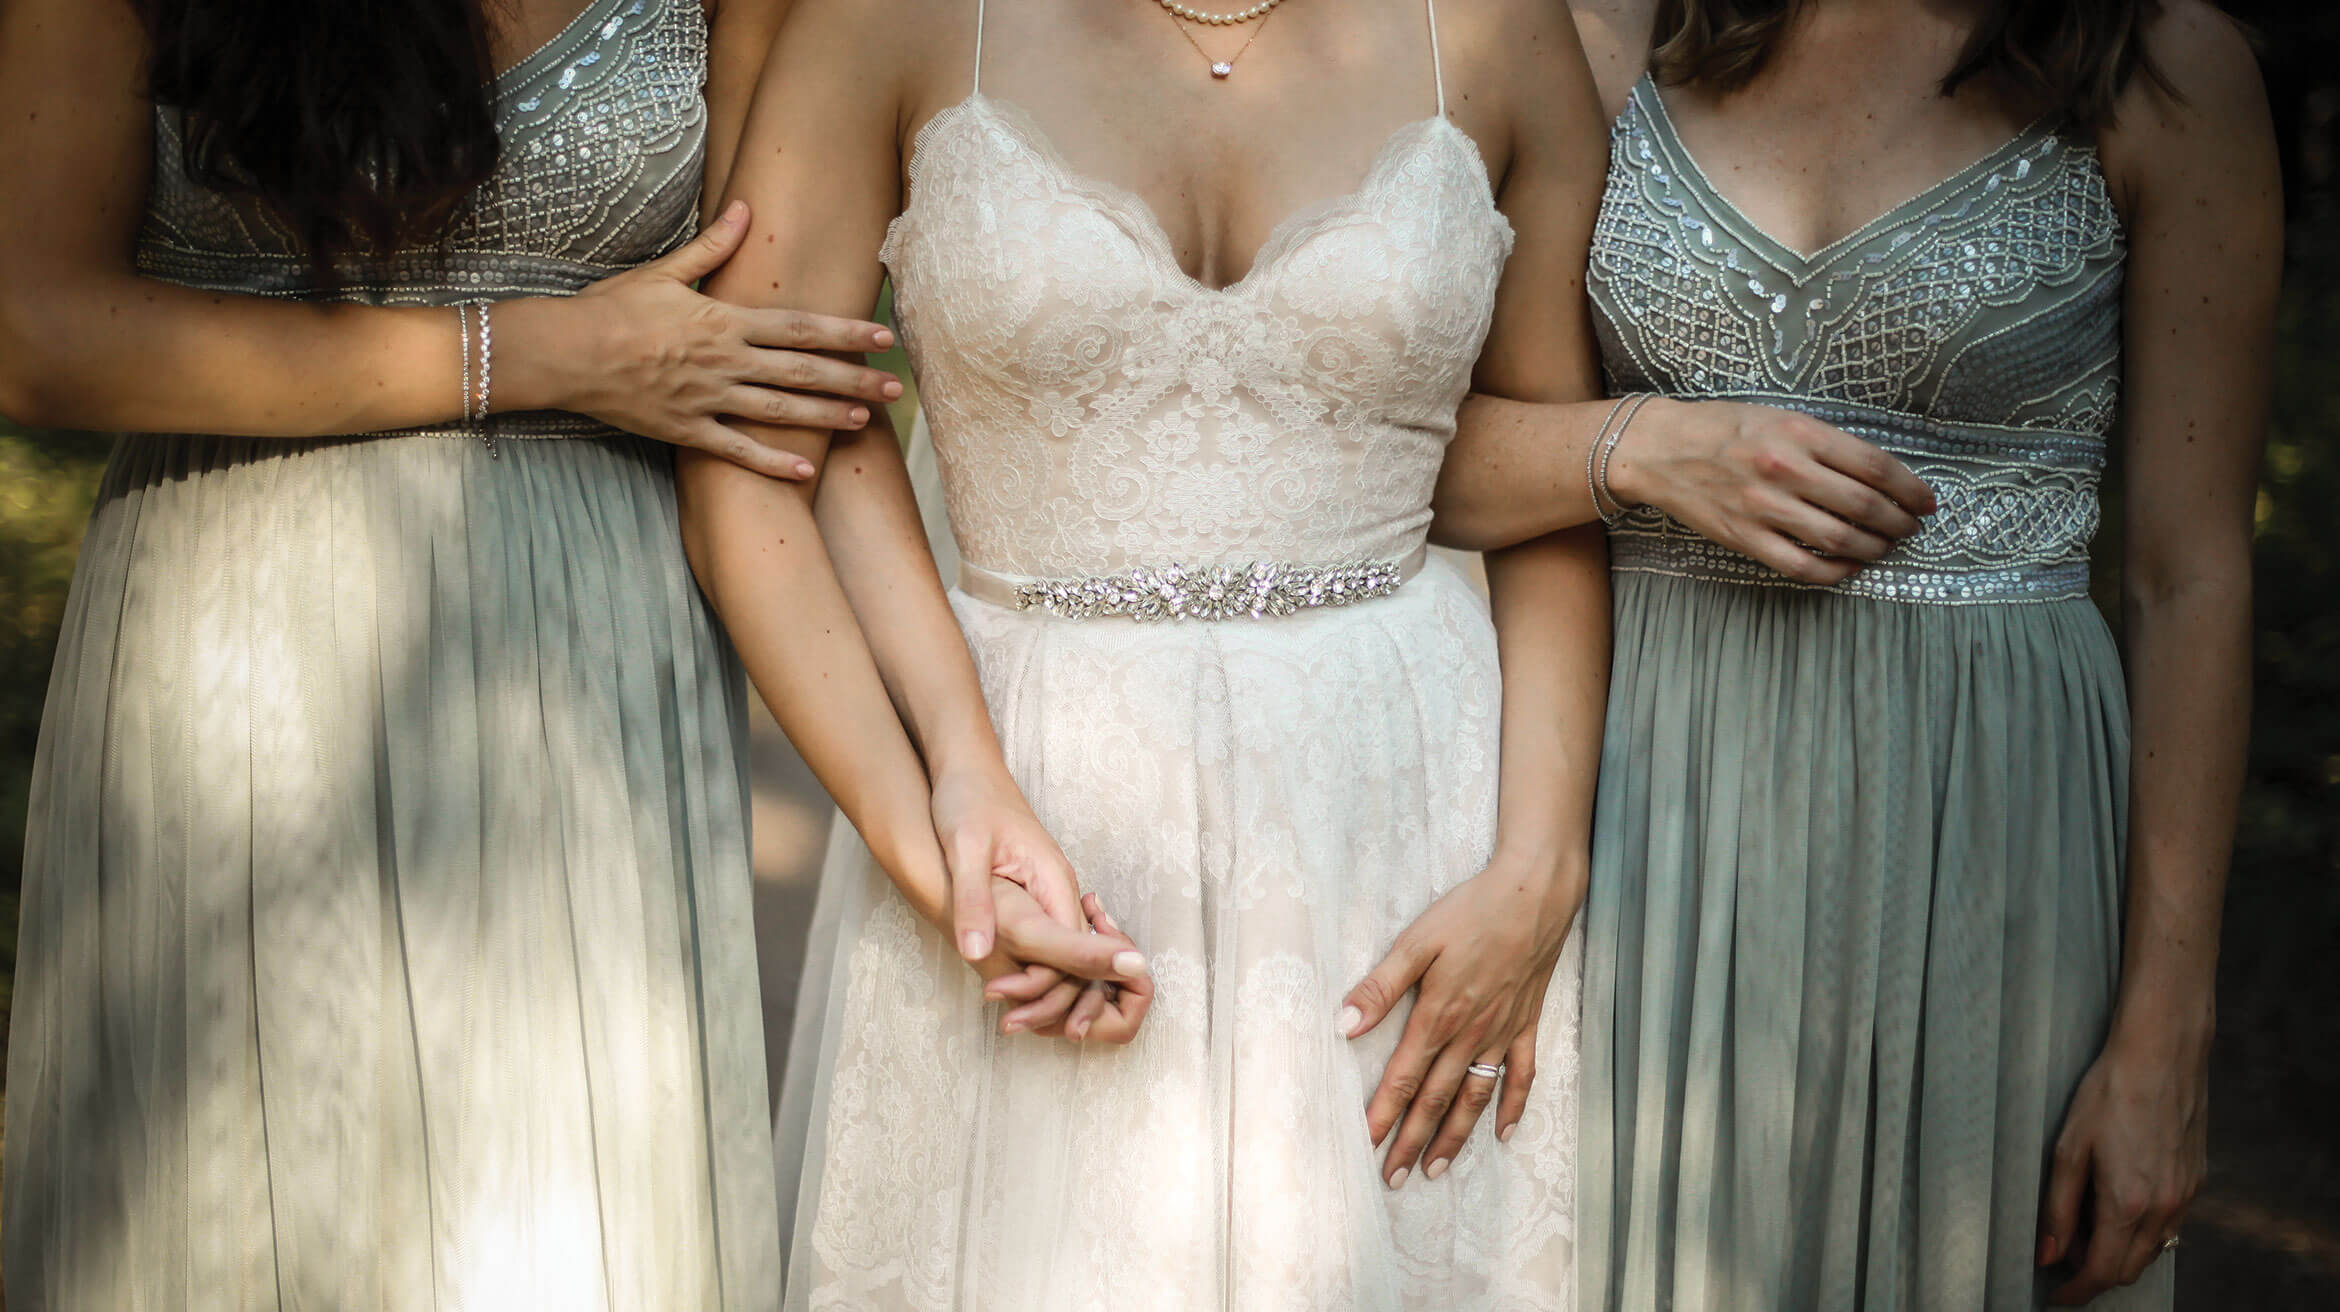 A bride and two bridesmaids holding hands before the ceremony.